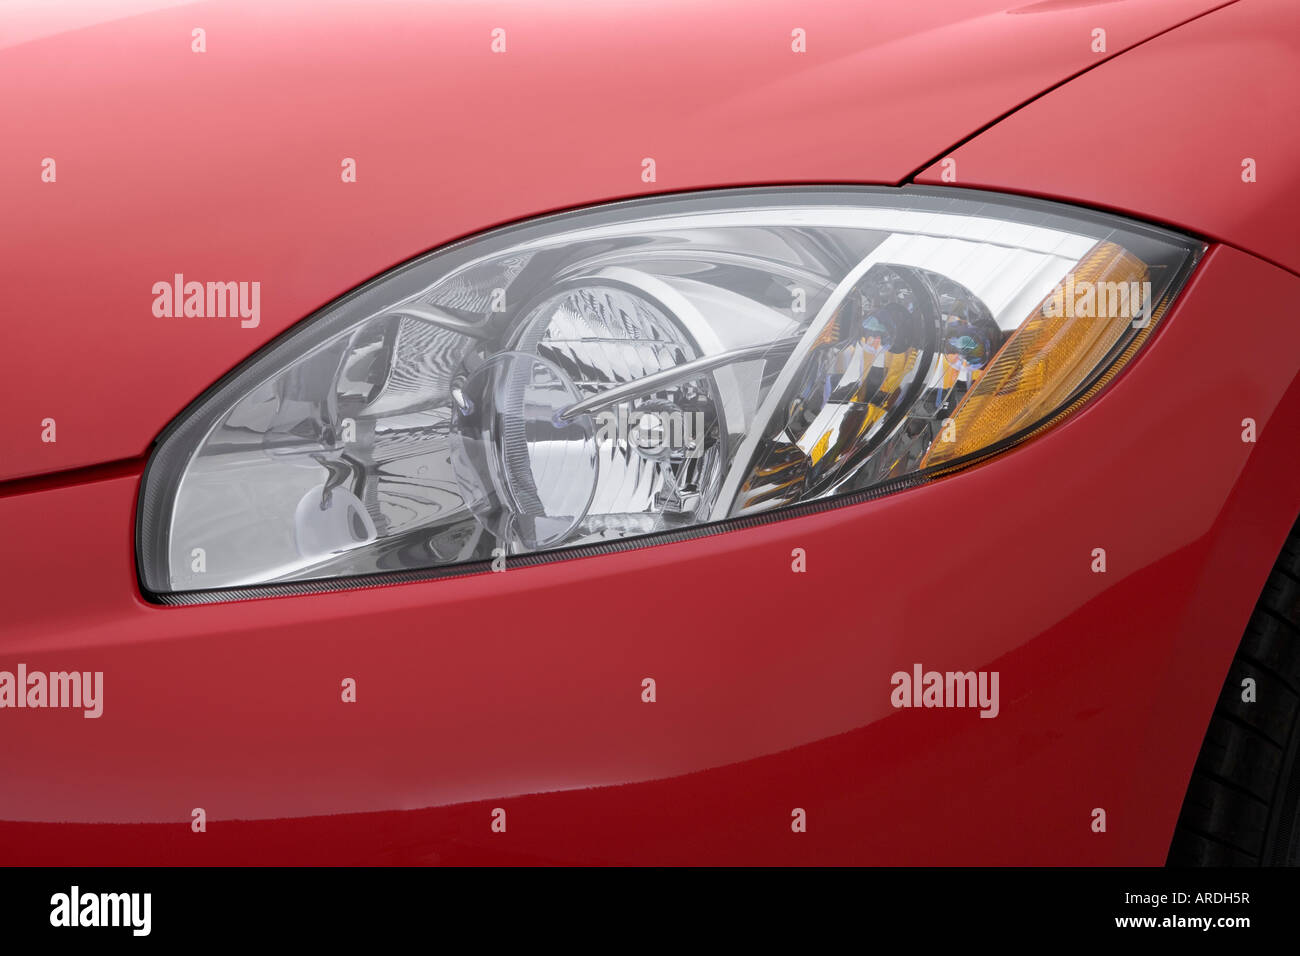 2007 mitsubishi eclipse spyder gt in red headlight stock image